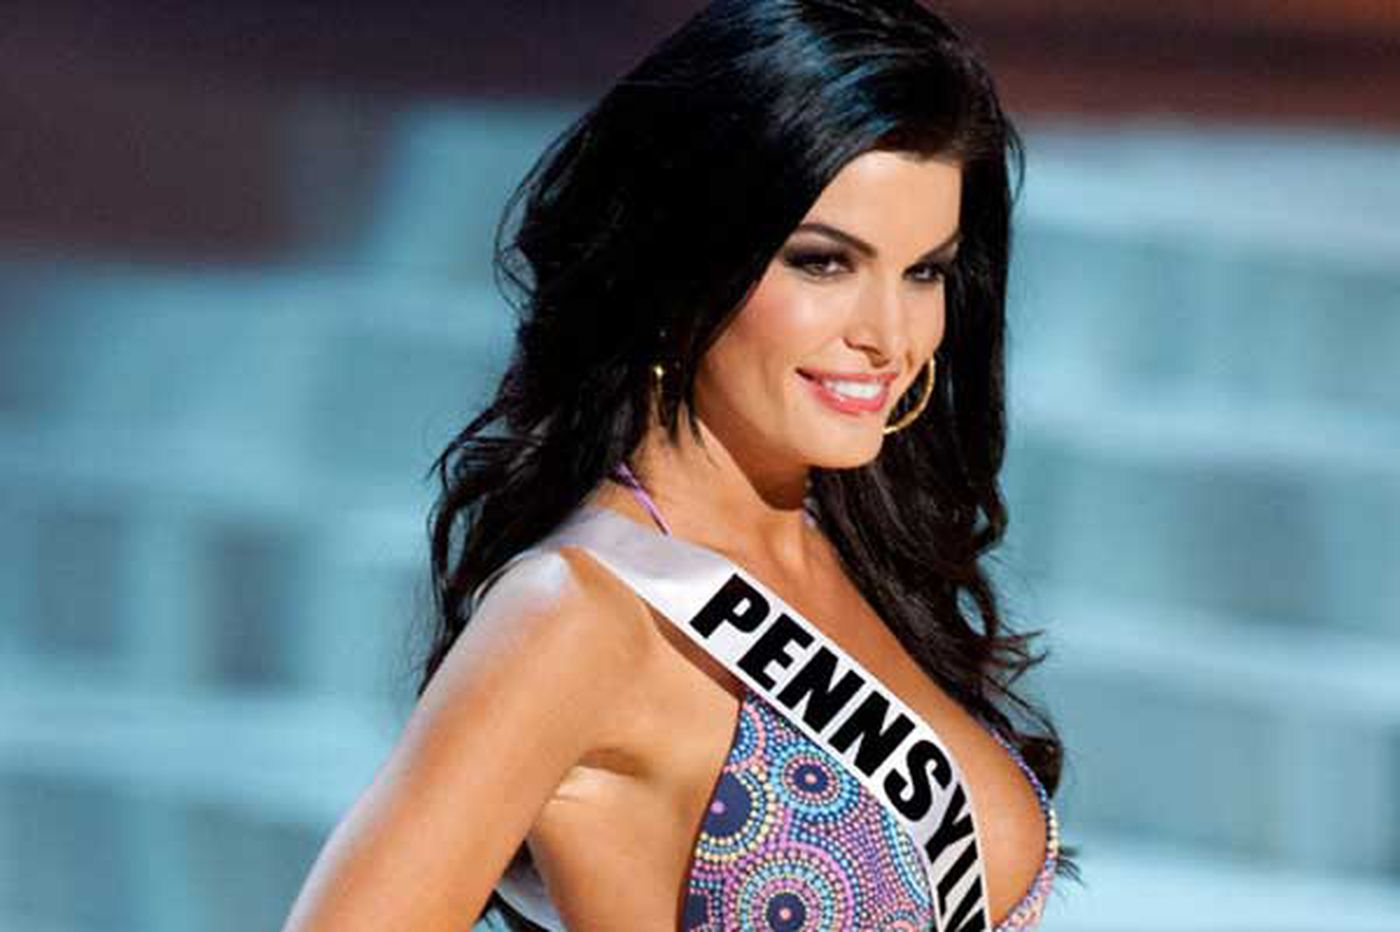 Sideshow: Miss Pa. loses to Trump